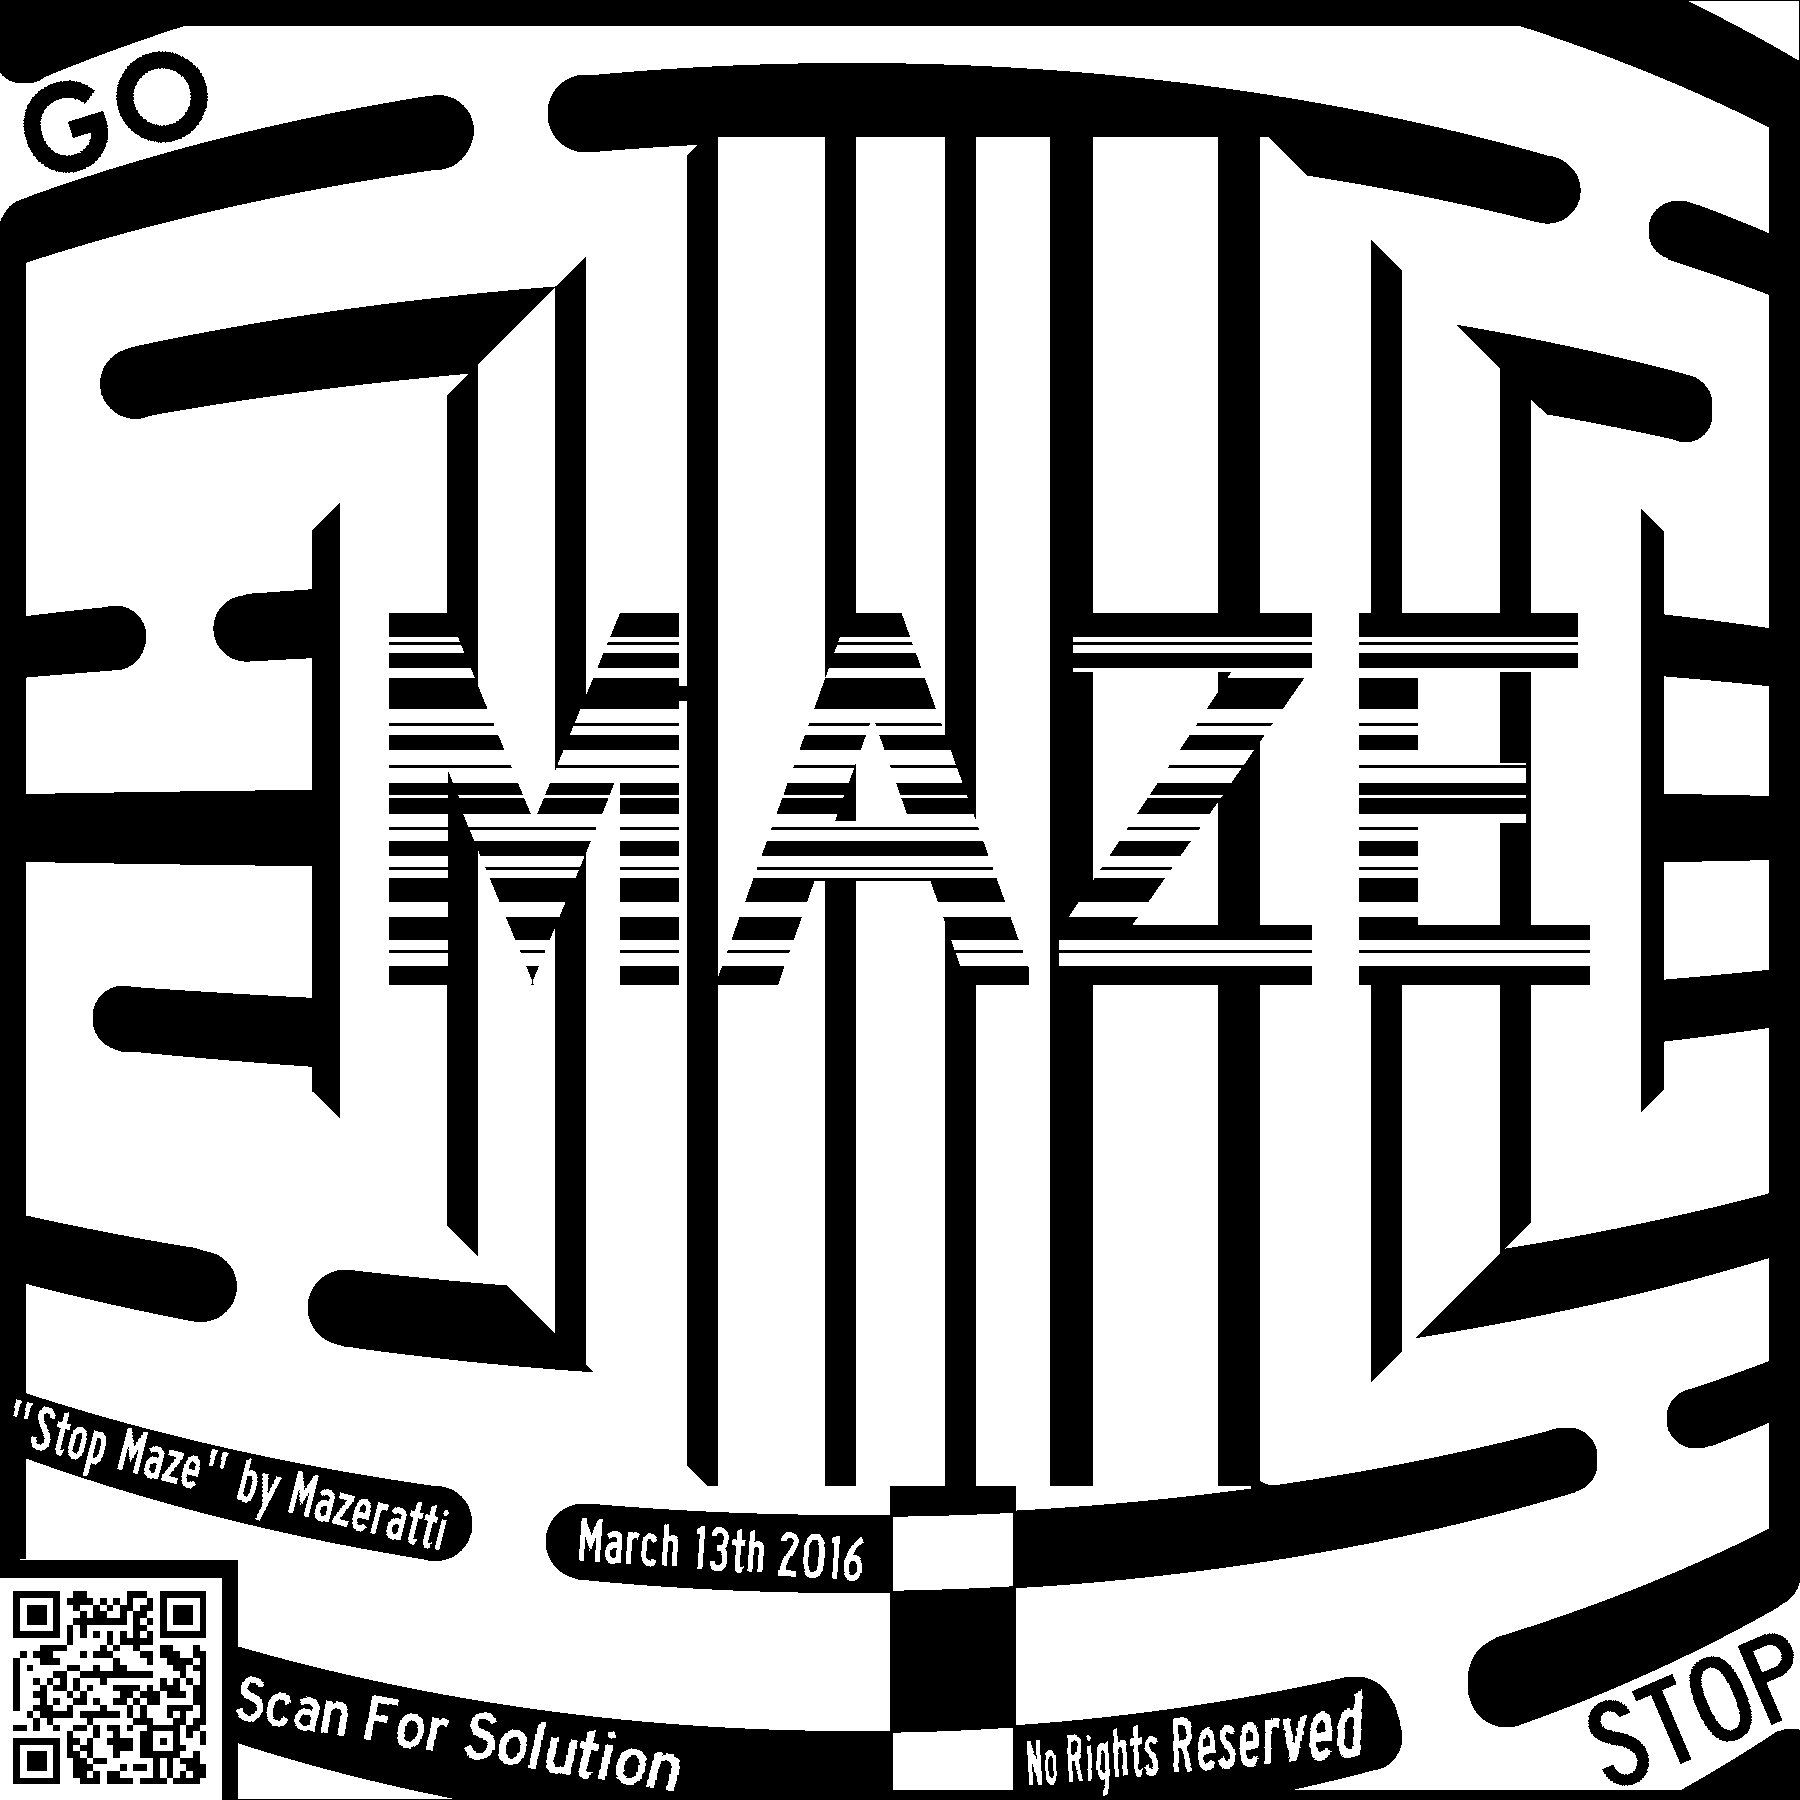 stop maze coloring page | Hilarious Cat Gifs | Pinterest | Maze and Cat